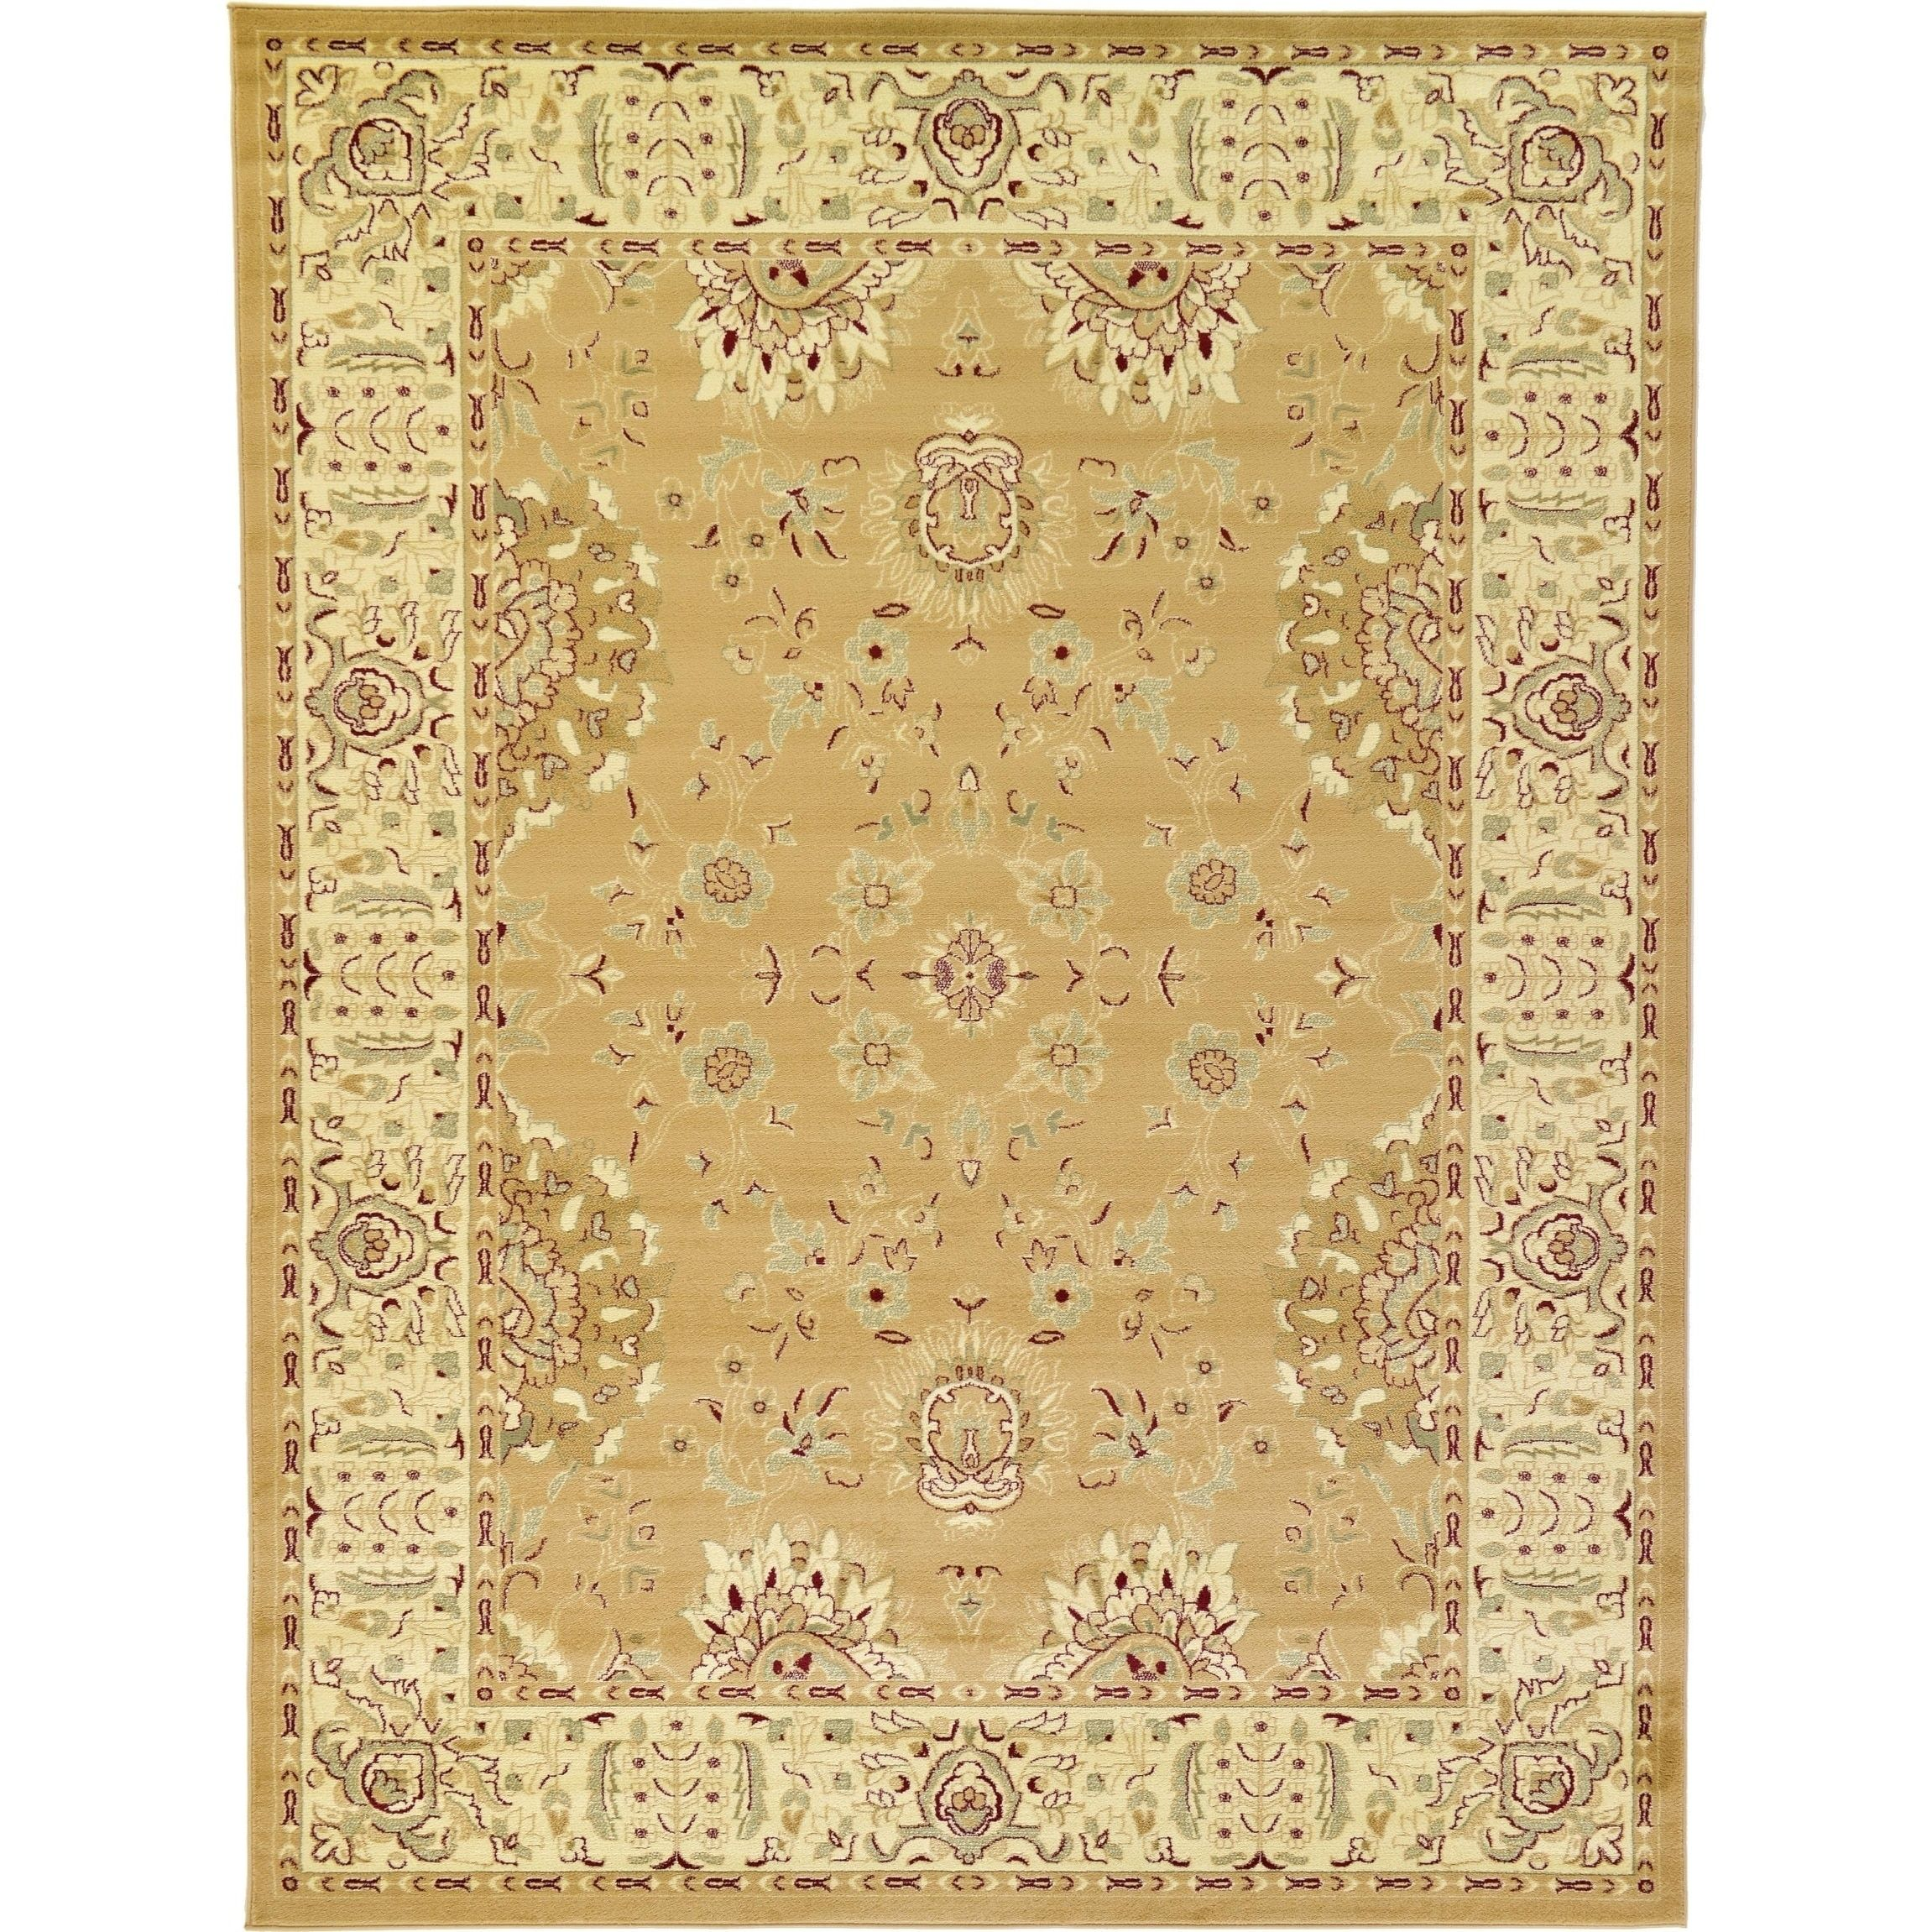 Unique Agra Tan And Green Floral Traditional Area Rug 9 X 12